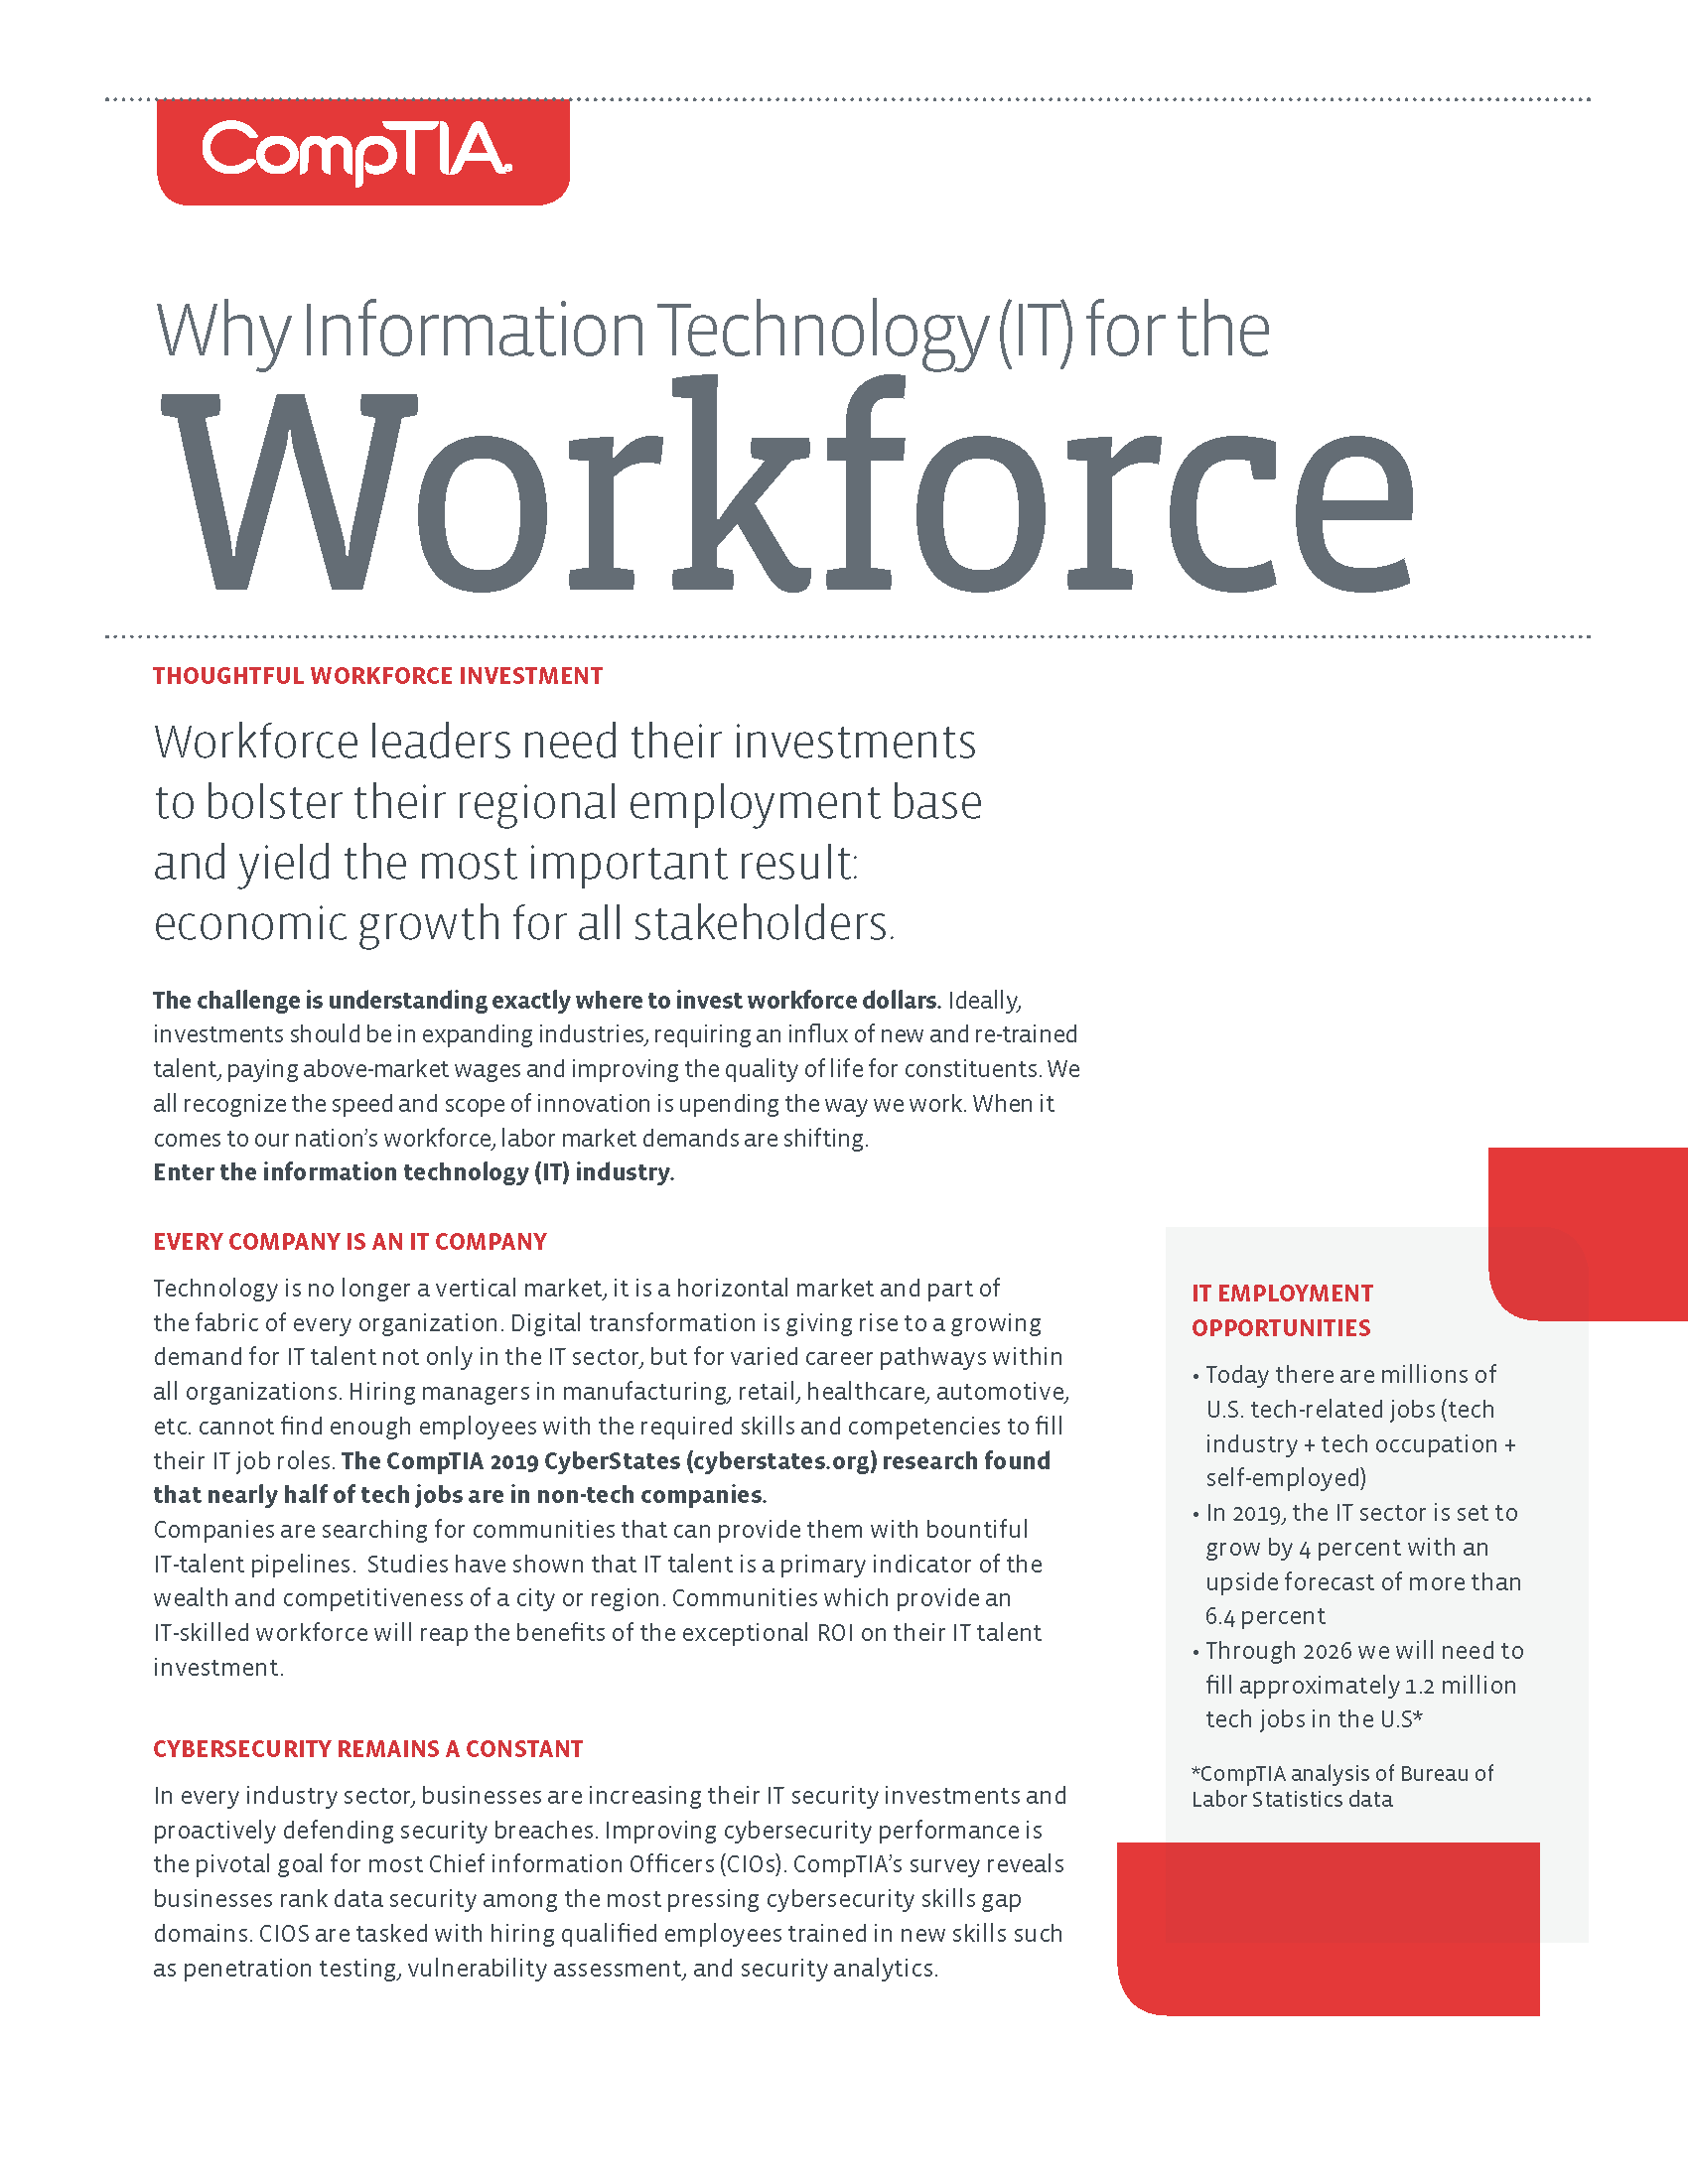 06338 Why IT for Workforce _Page_1